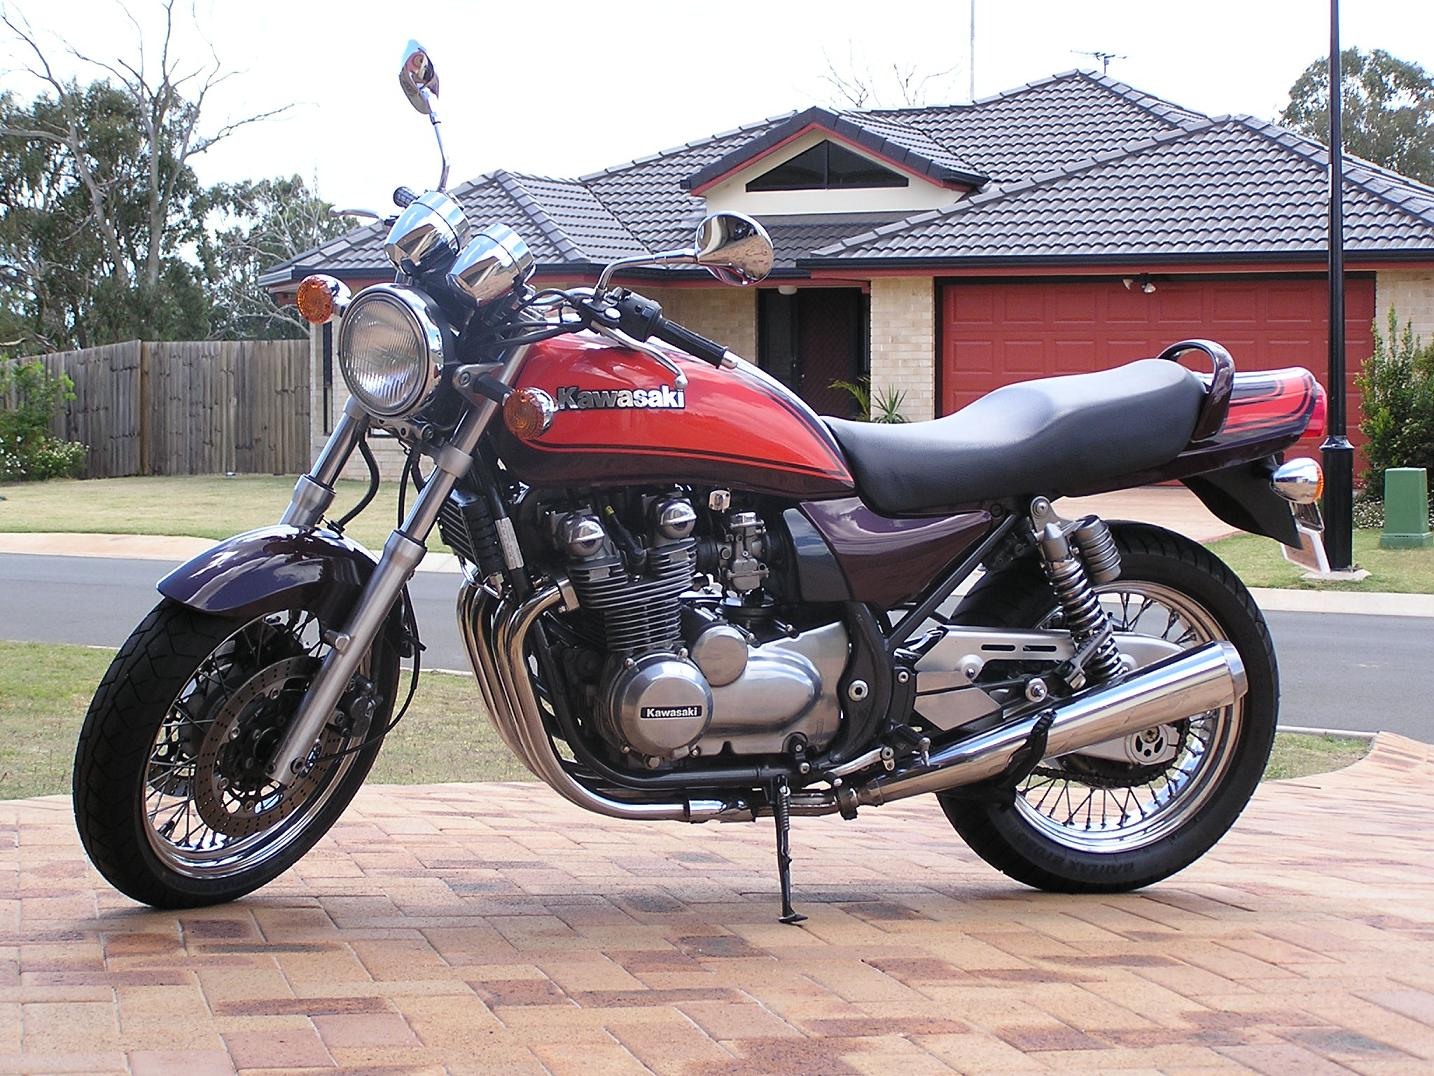 Kawasaki Zephyr 750 Photos Photogallery With 3 Pics